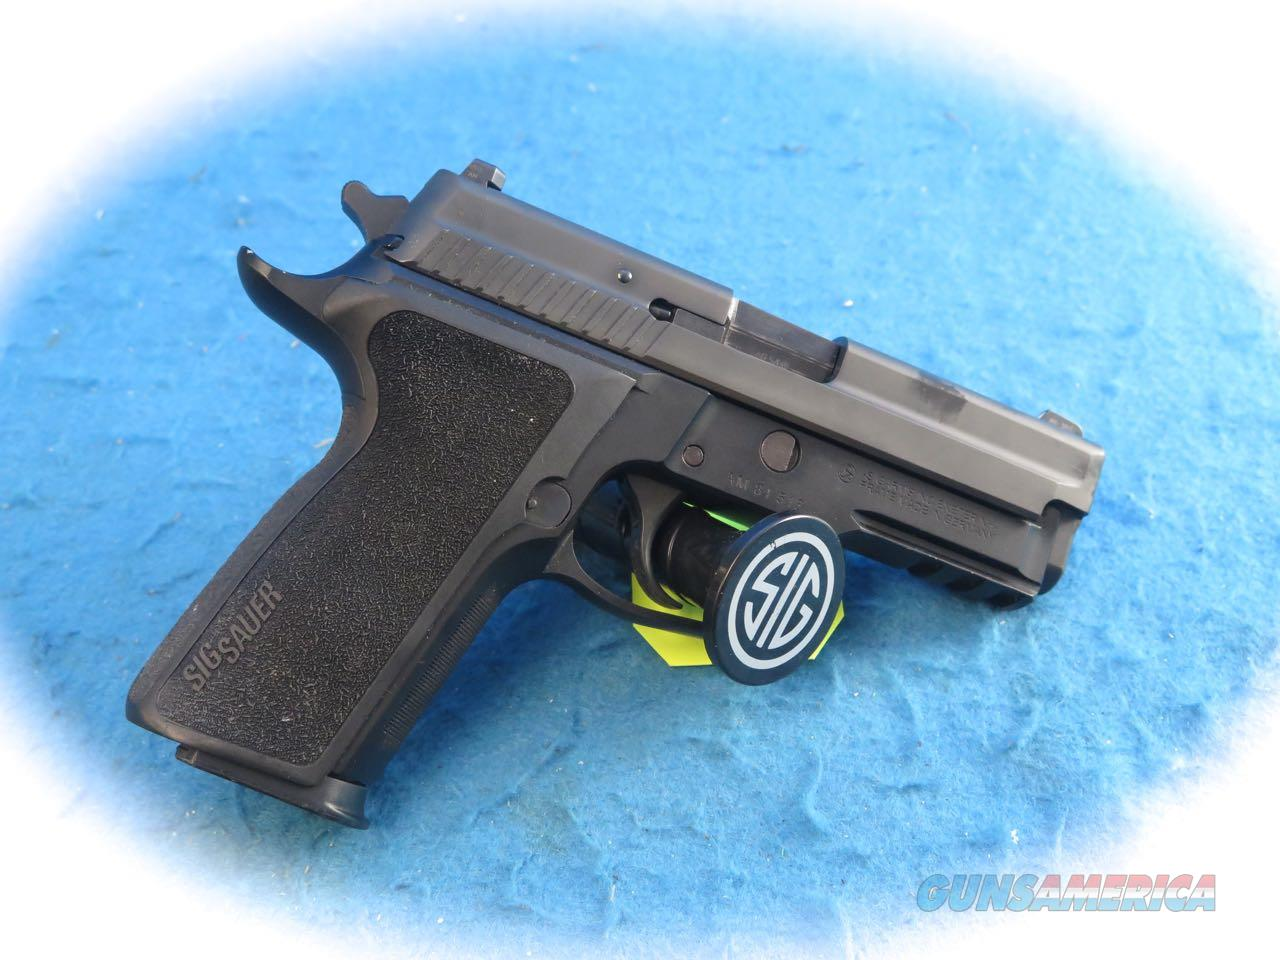 Sig Sauer P229 .40 S&W Cal Pistol W/Extras **Used**  Guns > Pistols > Sig - Sauer/Sigarms Pistols > P229